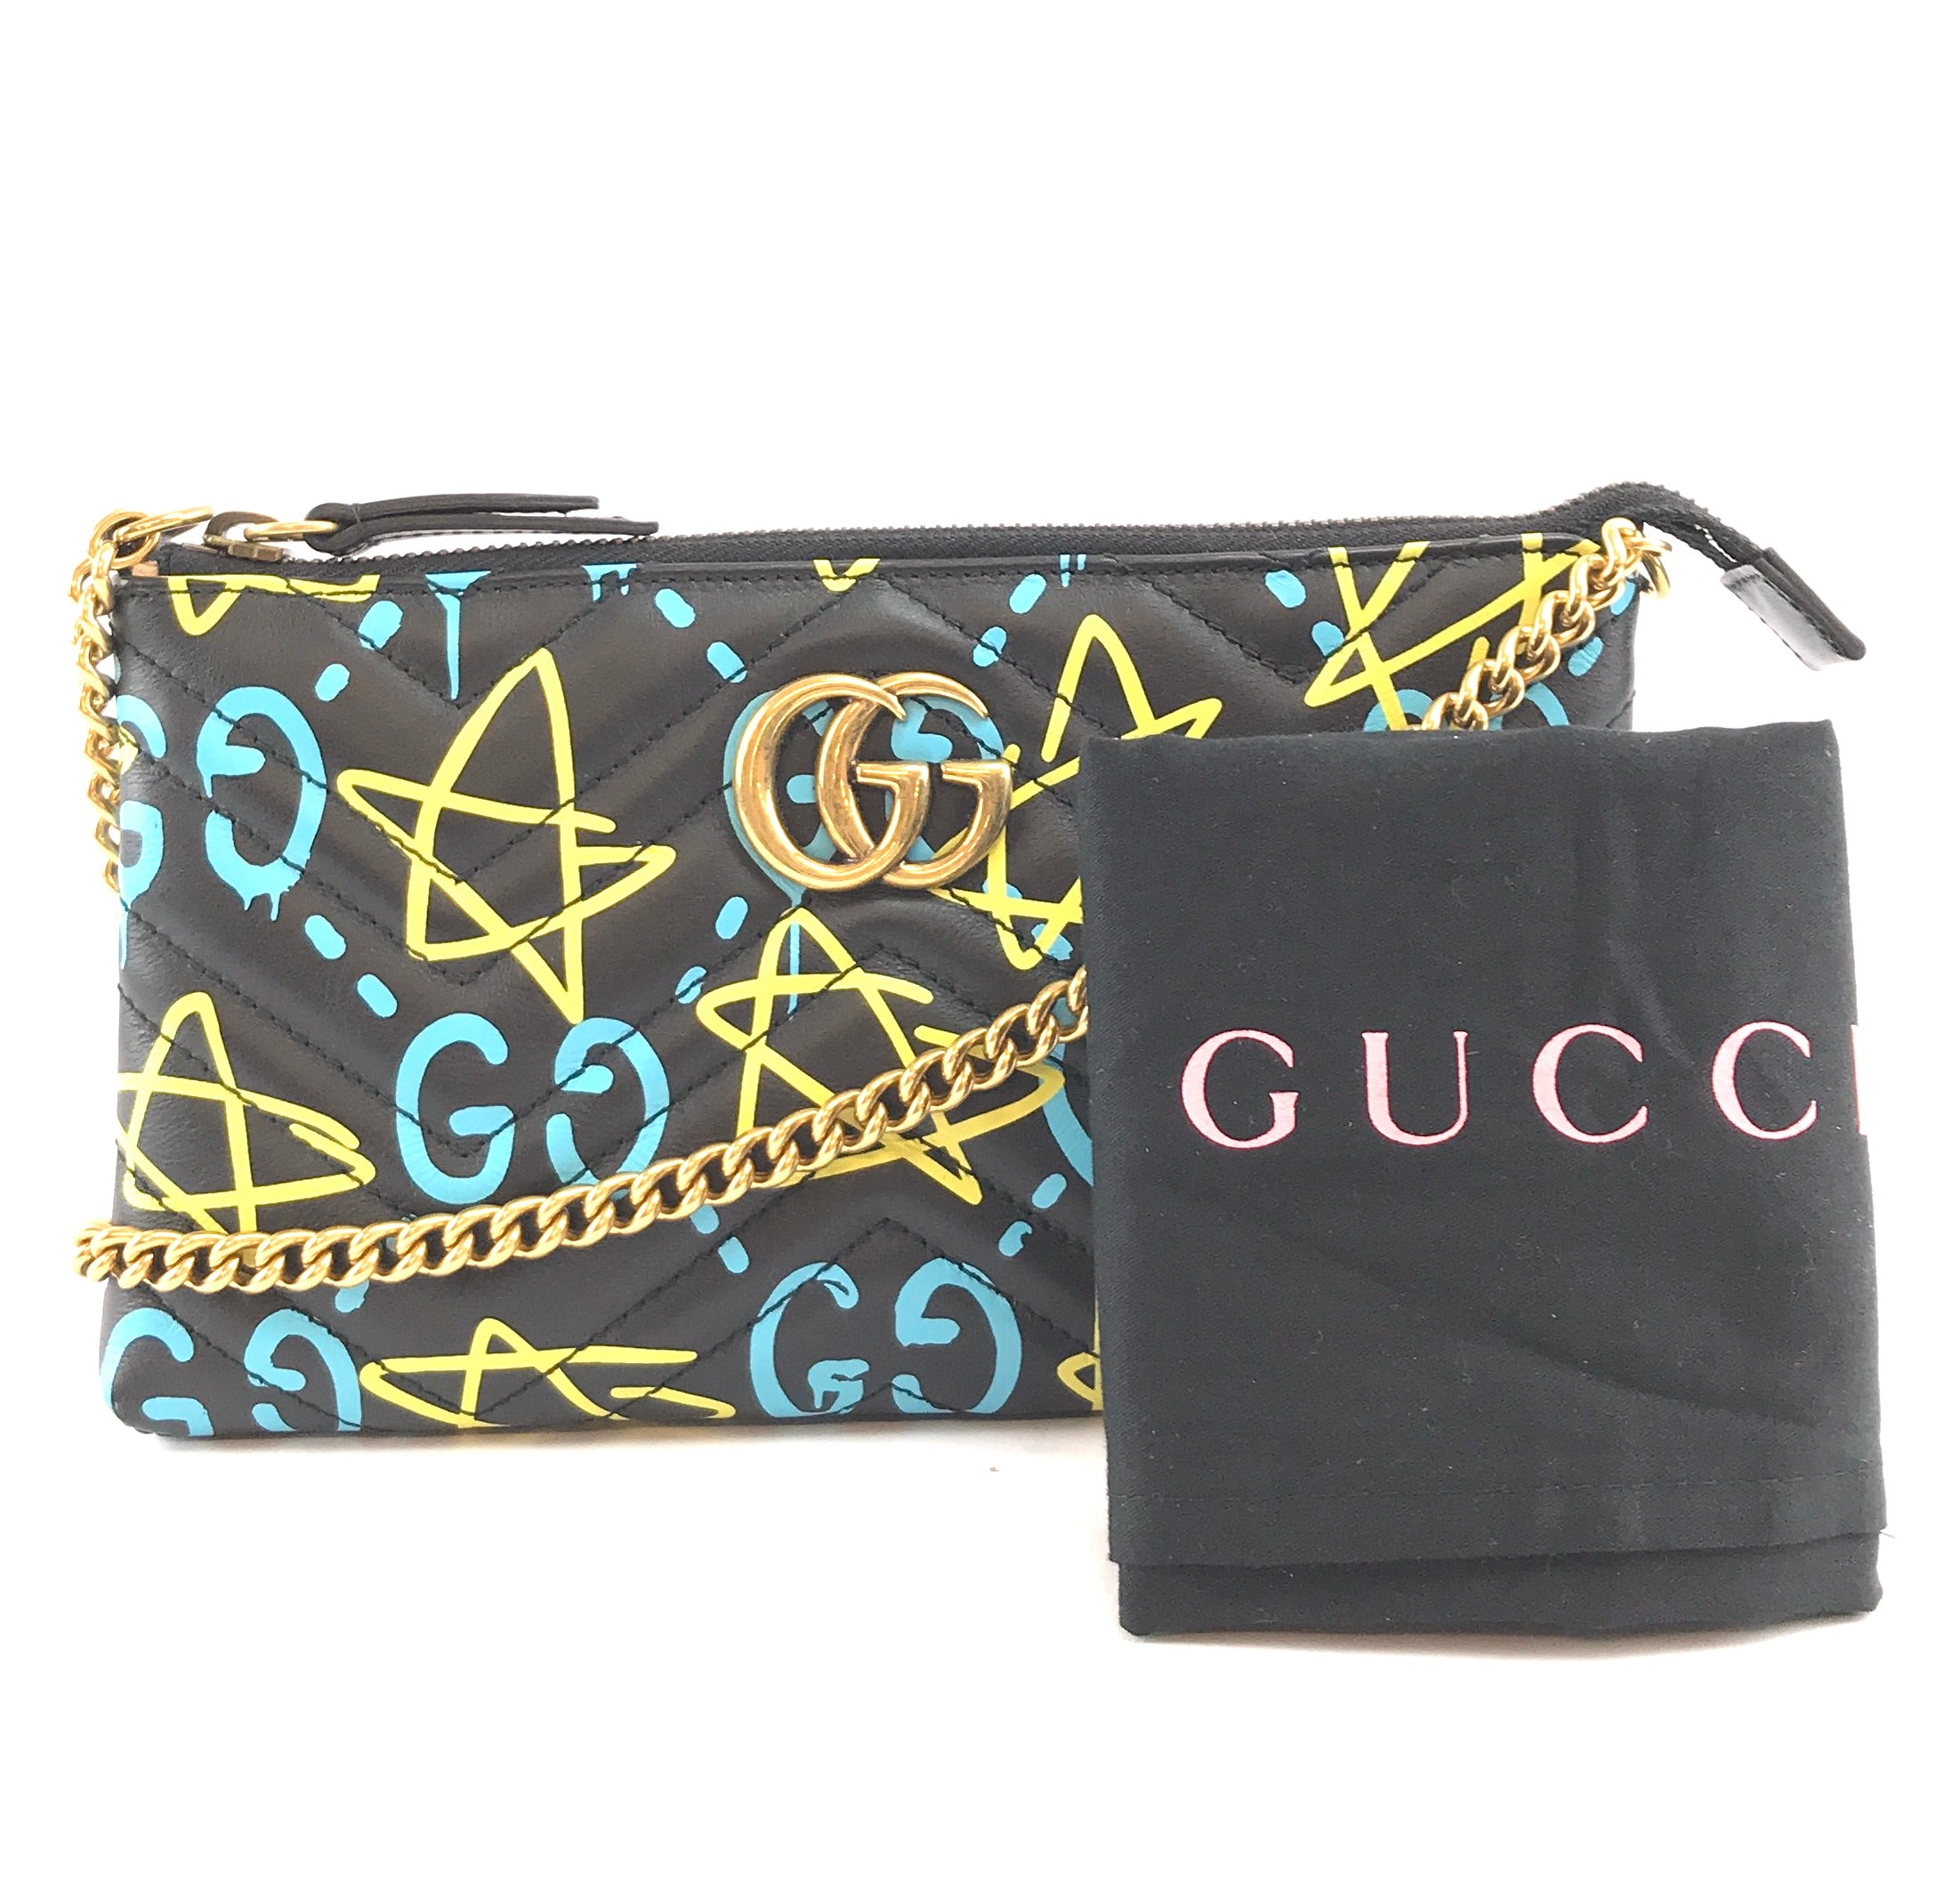 Gucci Marmont Ghost GG Long Chain Black Leather